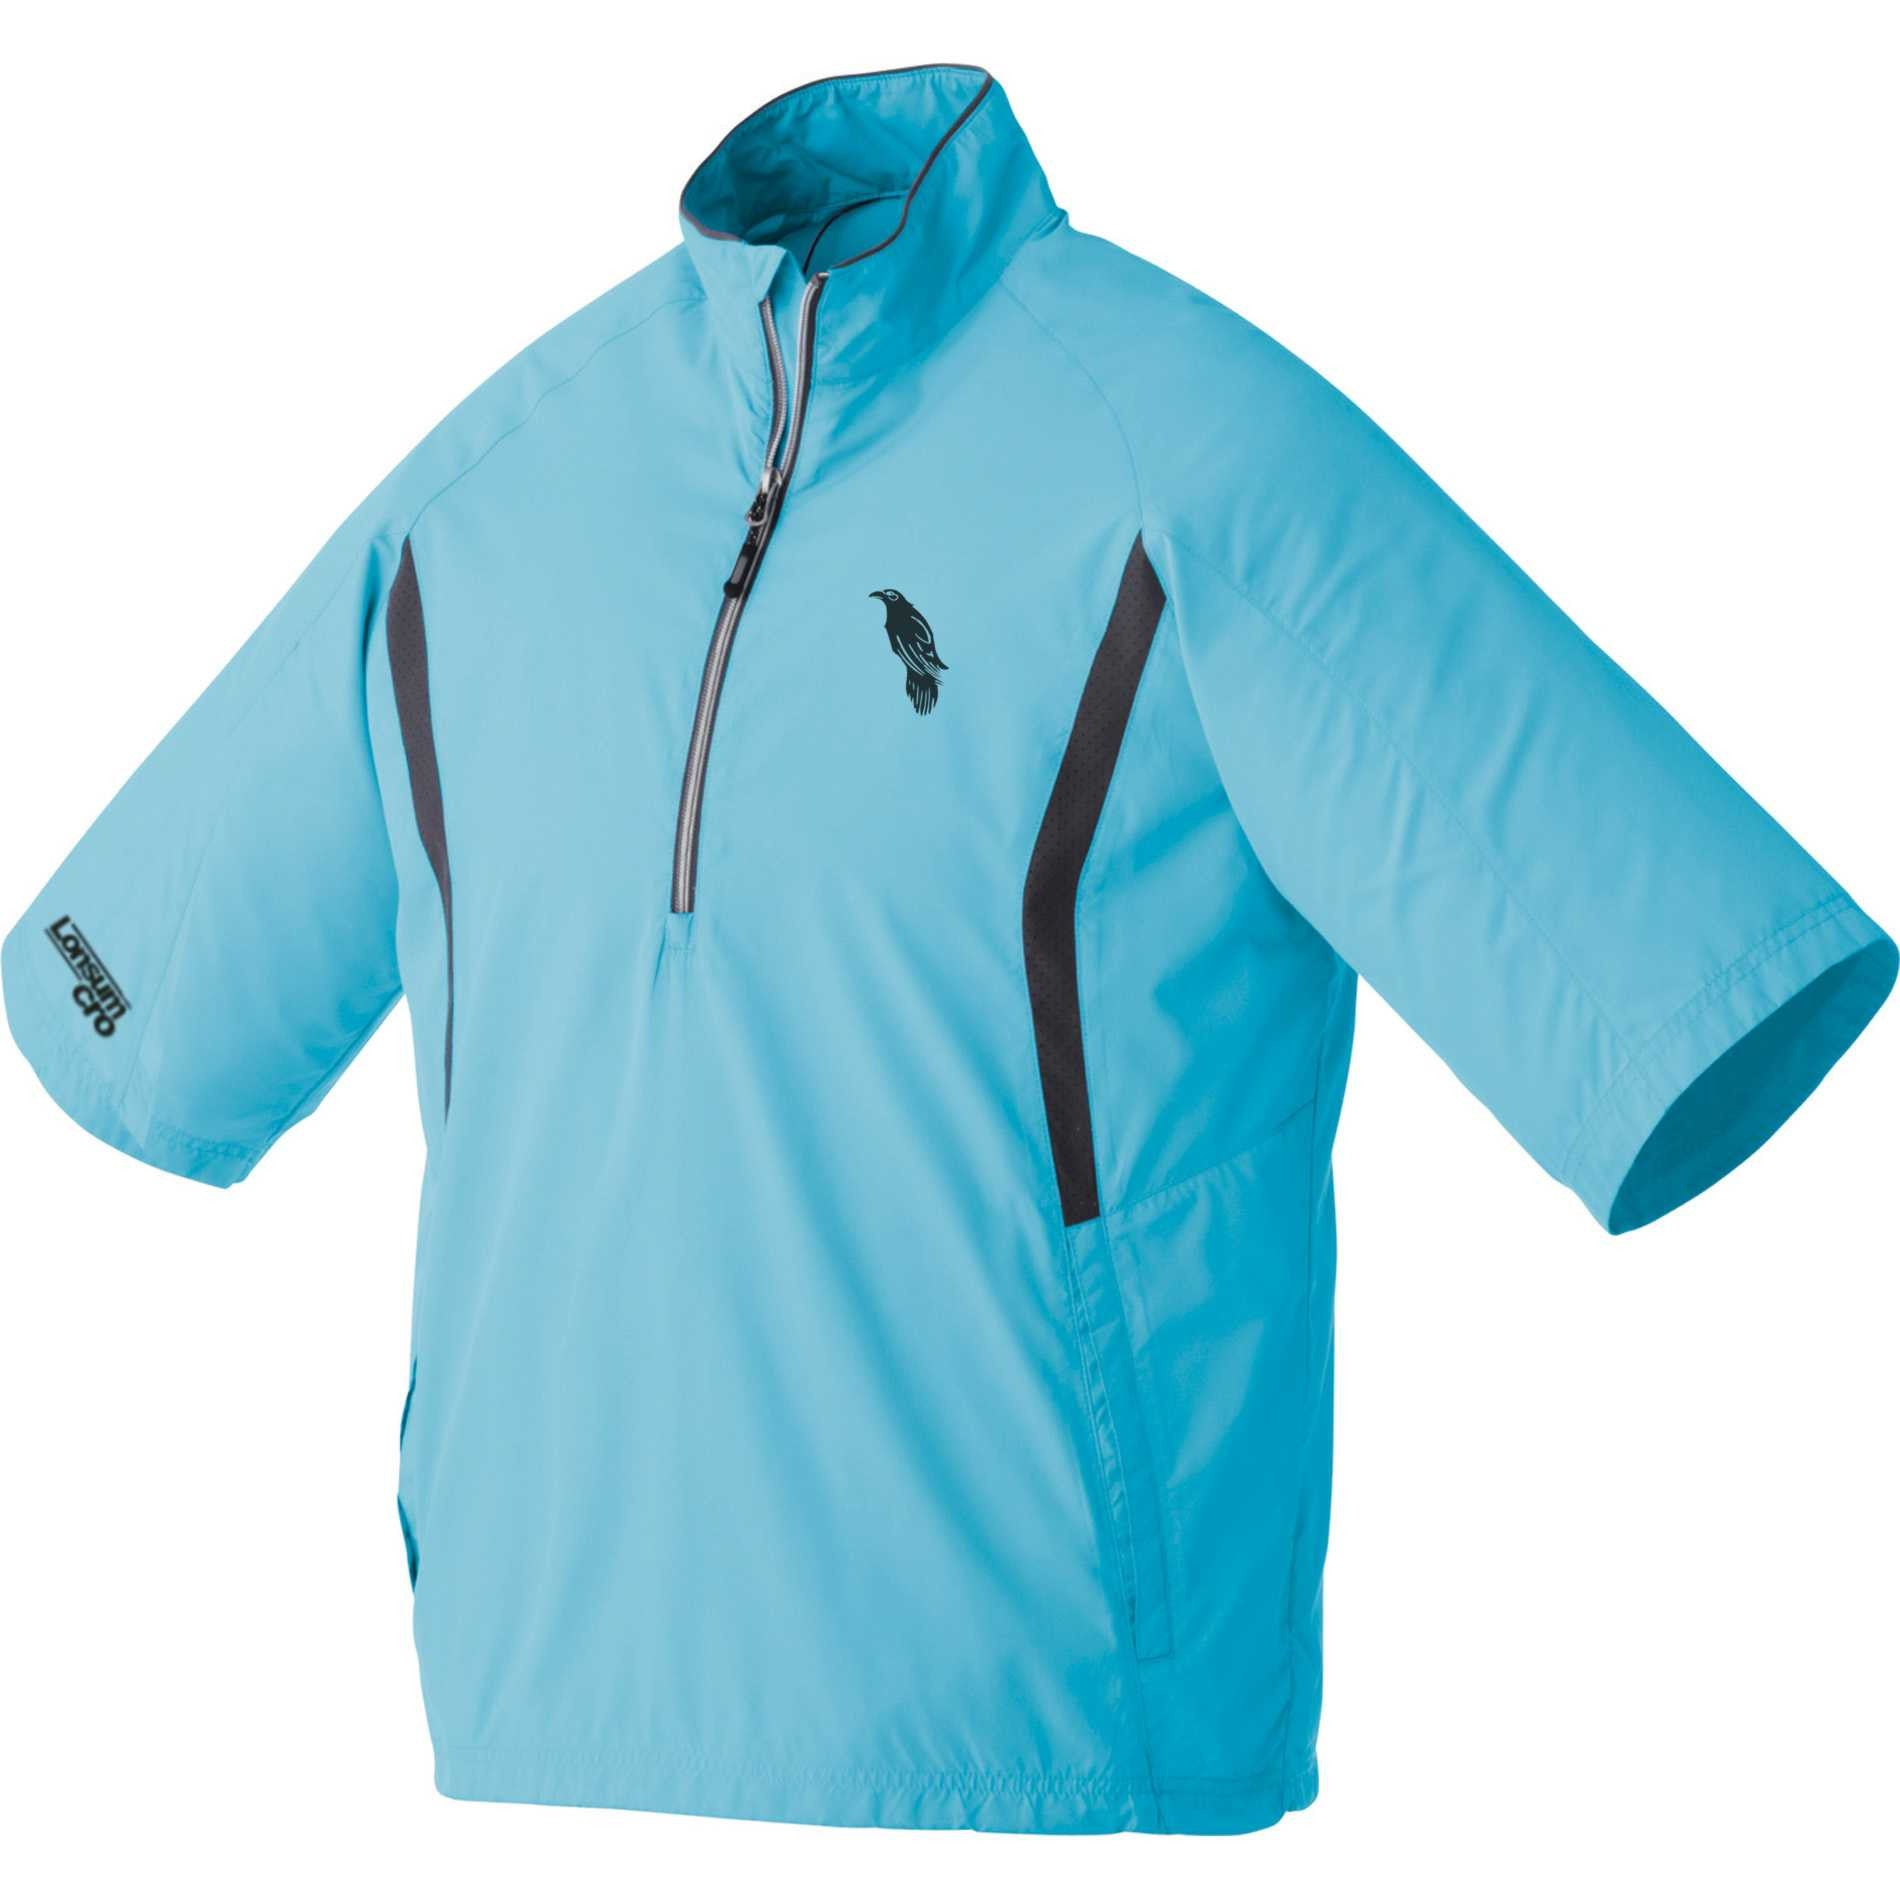 LonsumCRO Men's Half Zipper WindShirts in Chill Blue